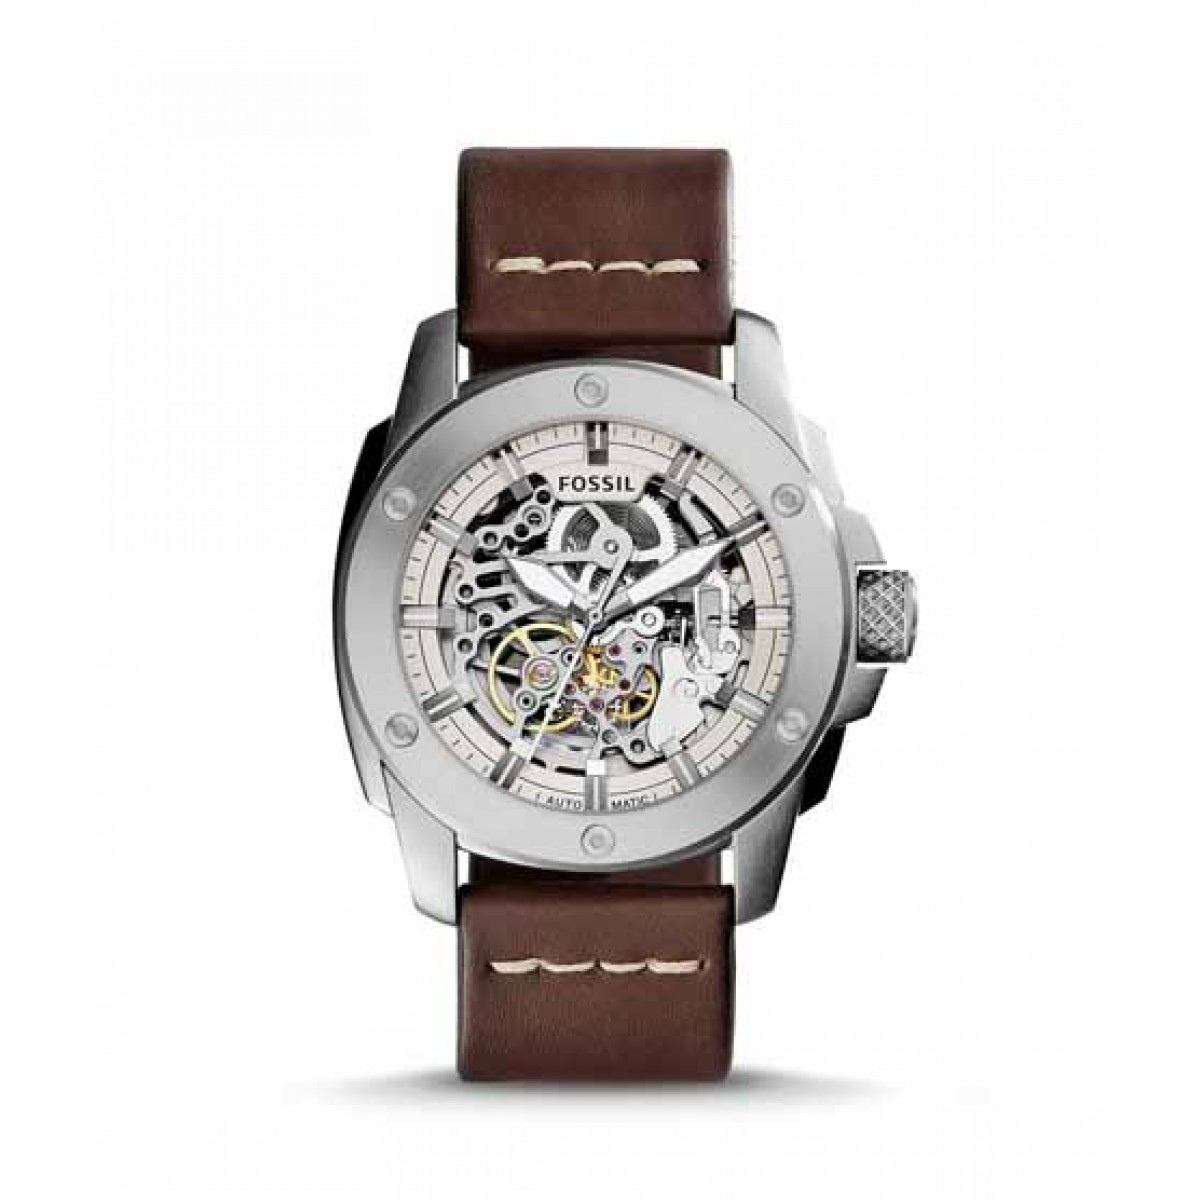 Fossil Modern Machine Automatic Men's Watch Brown Leather (ME3083P)